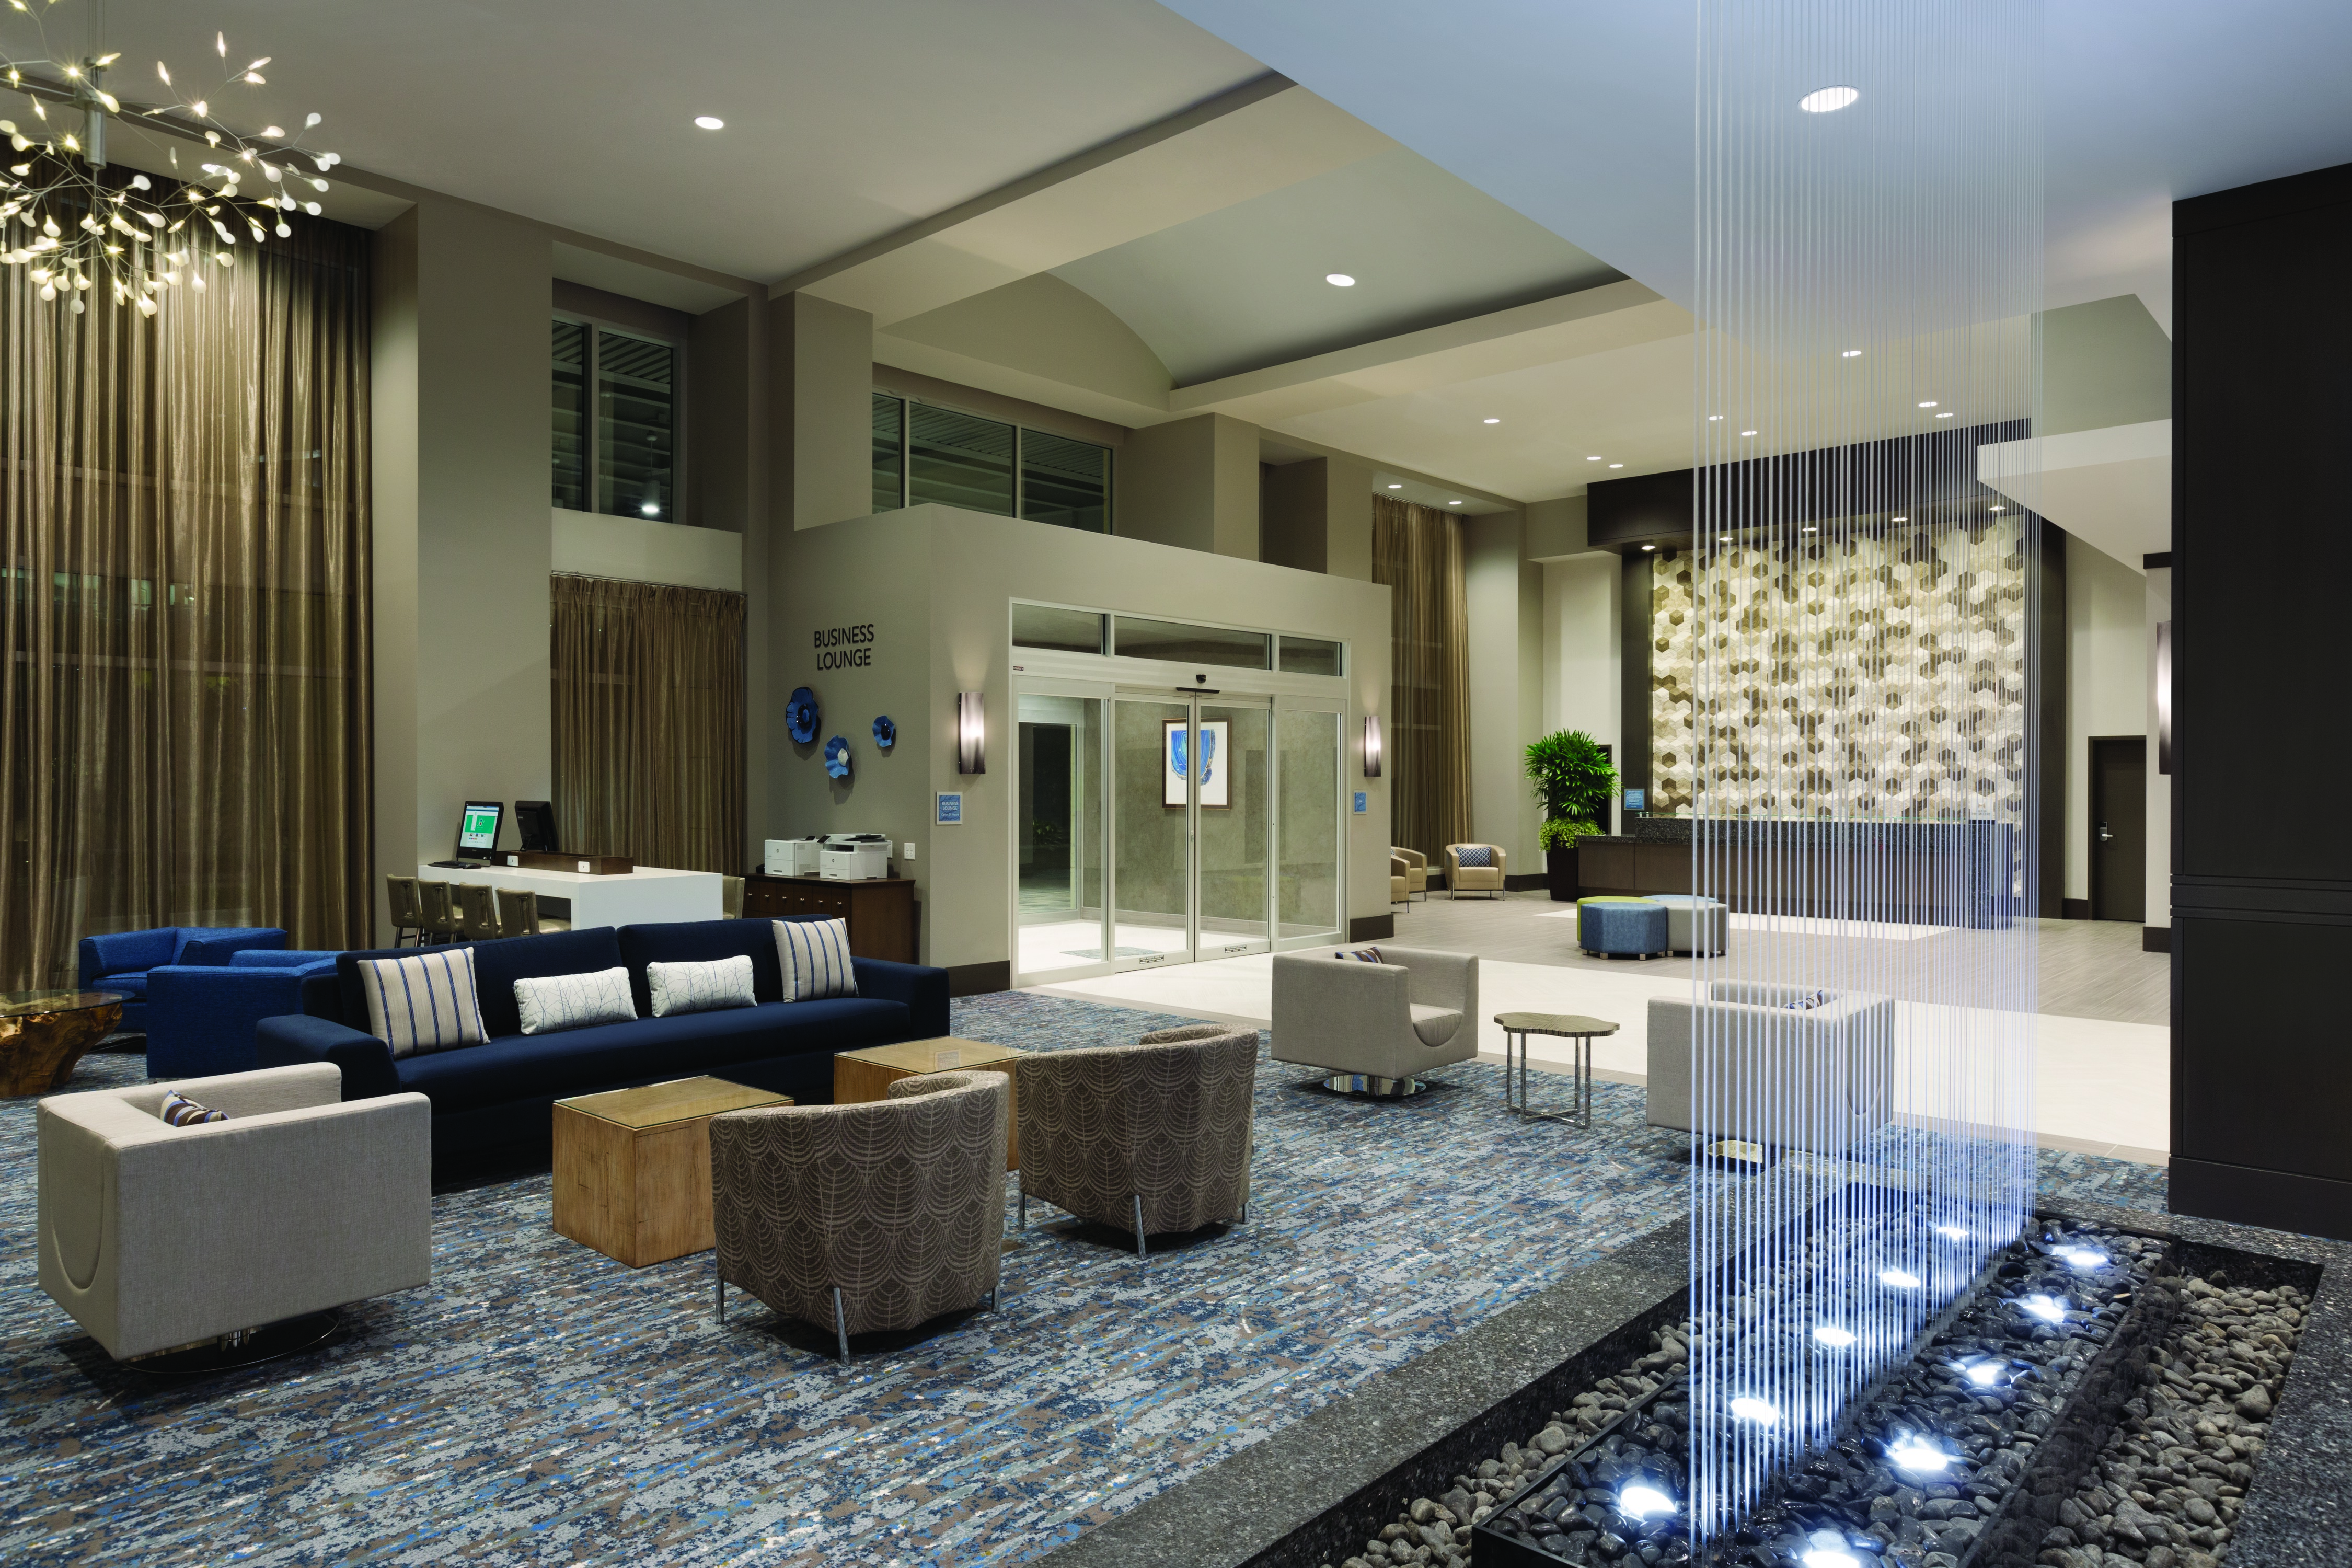 Hilton Worldwide Expands Its Houston Presence With The Opening Of Embassy Suites By Hilton The